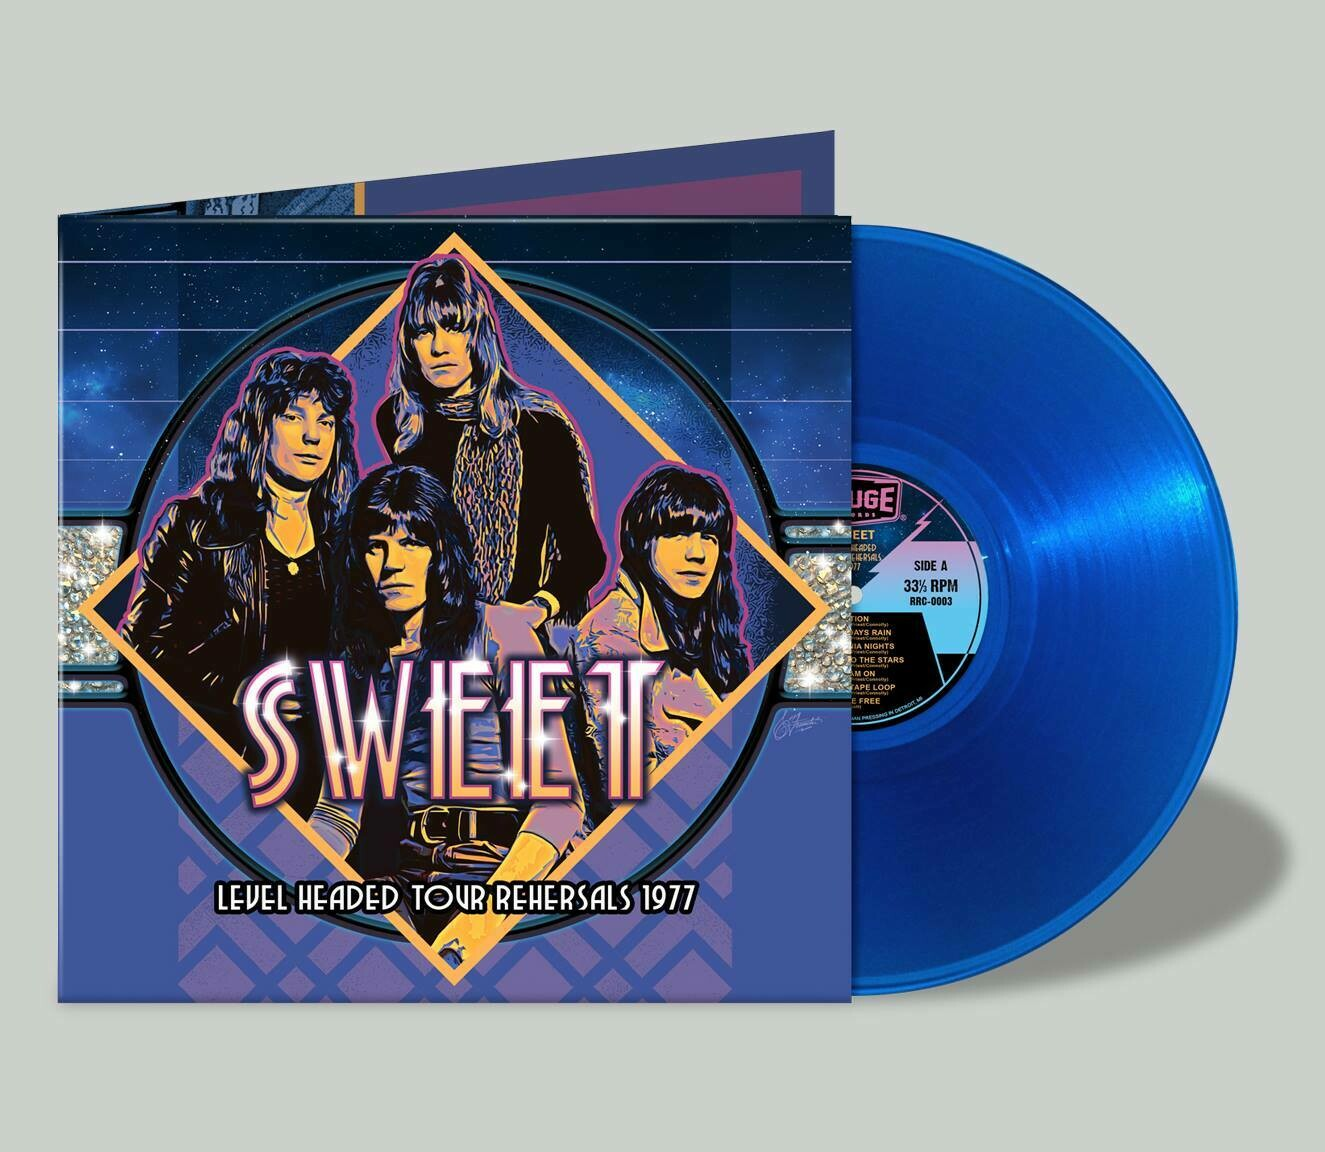 """Sweet """"Level Headed Tour Rehearsals 1977"""" -- Limited Edition Blue Vinyl (ONLY 9 Left)"""